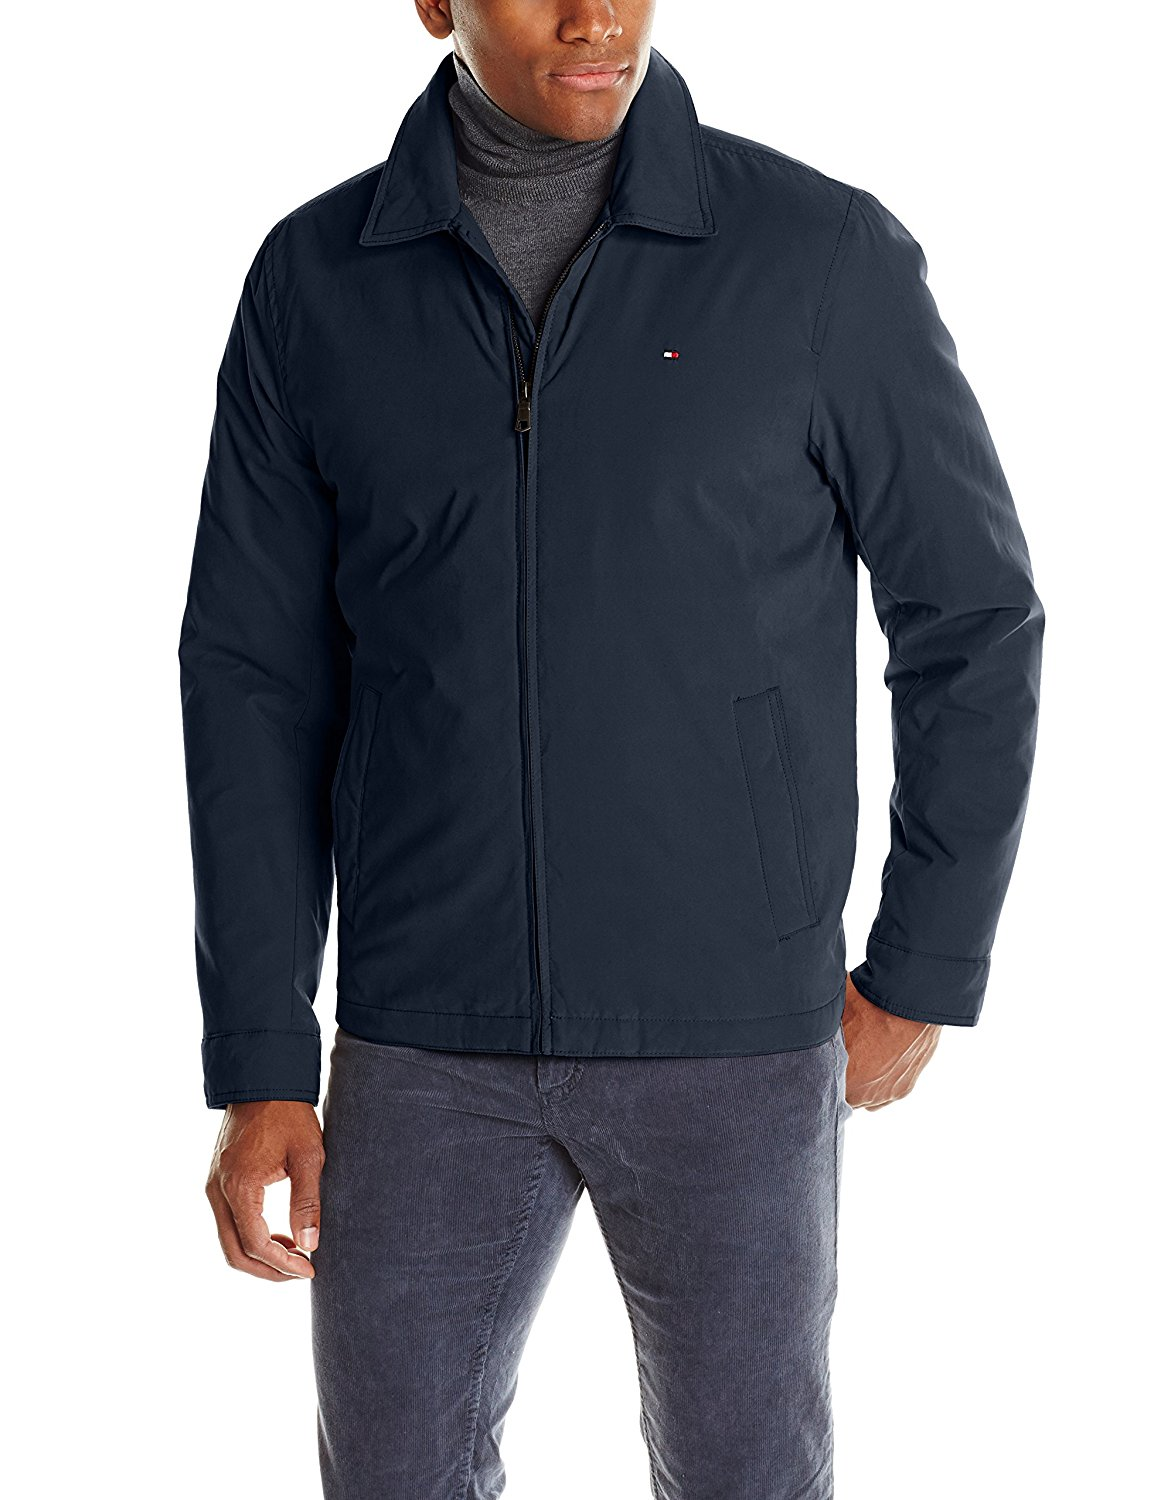 Tommy Hilfiger Men's Micro-Twill Open Bottom Zip Front Jacket, Navy, Small at Amazon Men's Clothing store